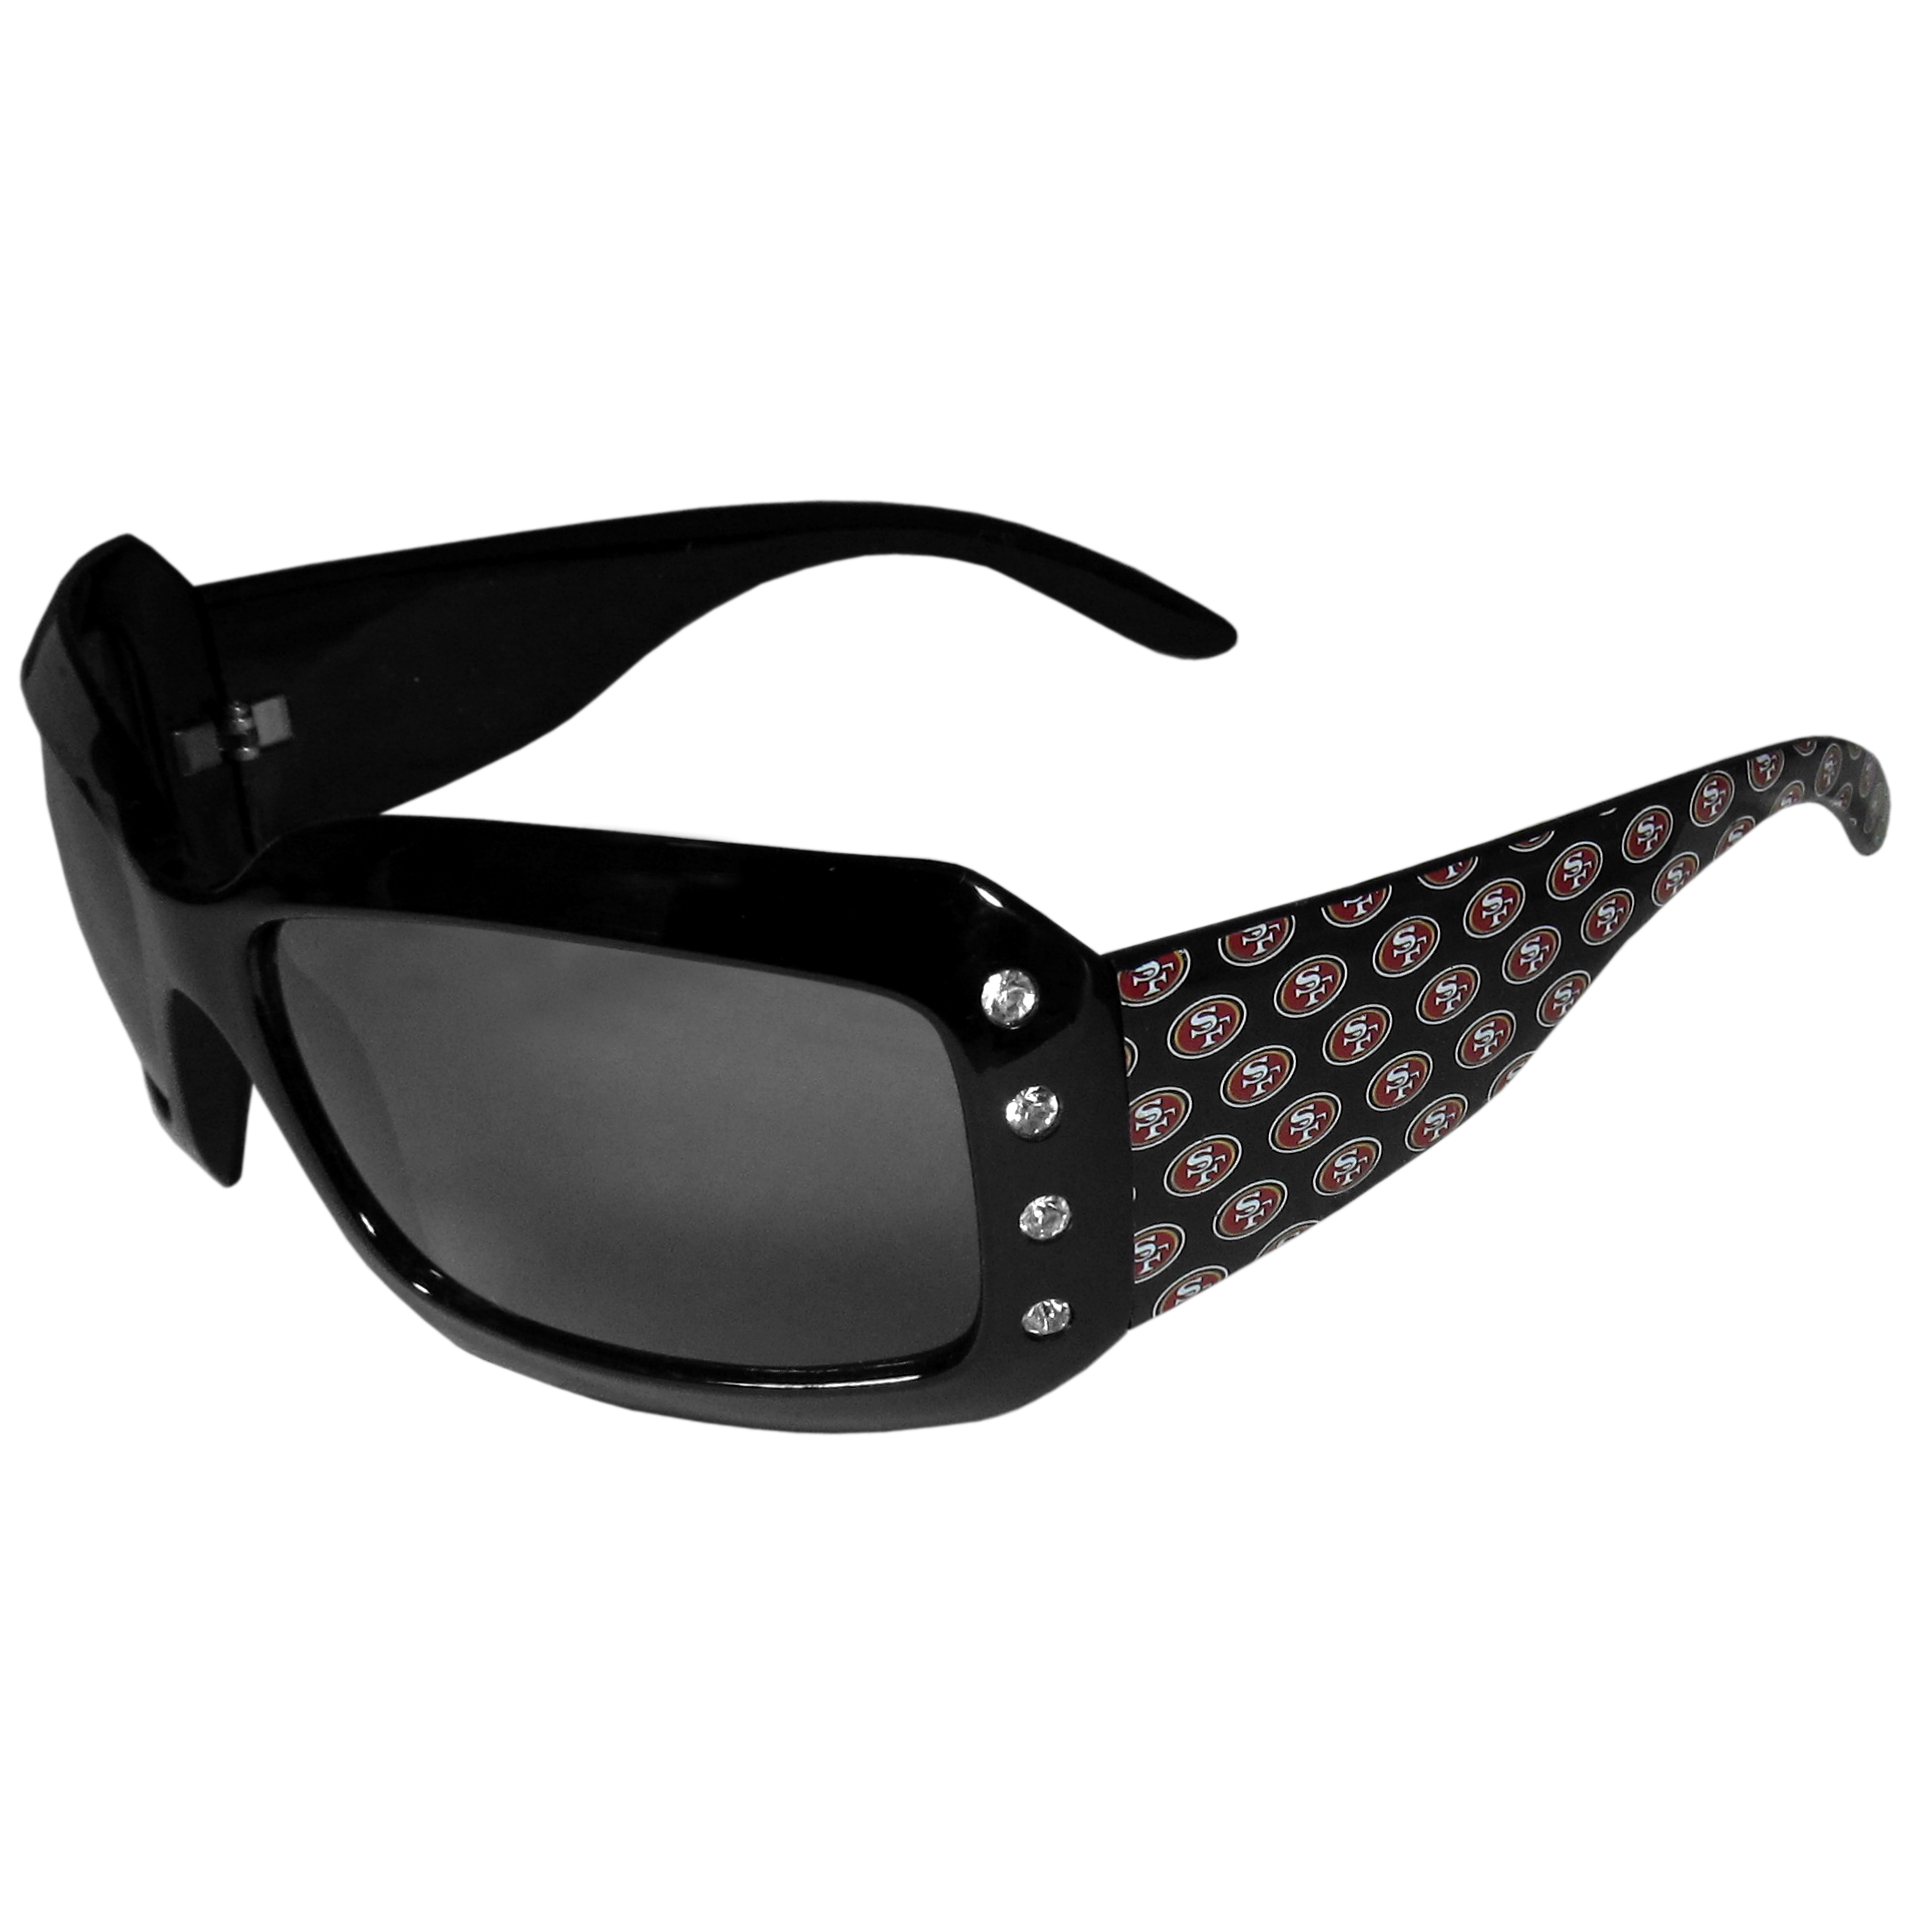 San Francisco 49ers Designer Women's Sunglasses - Our designer women's sunglasses have a repeating San Francisco 49ers logo design on the team colored arms and rhinestone accents. 100% UVA/UVB protection.